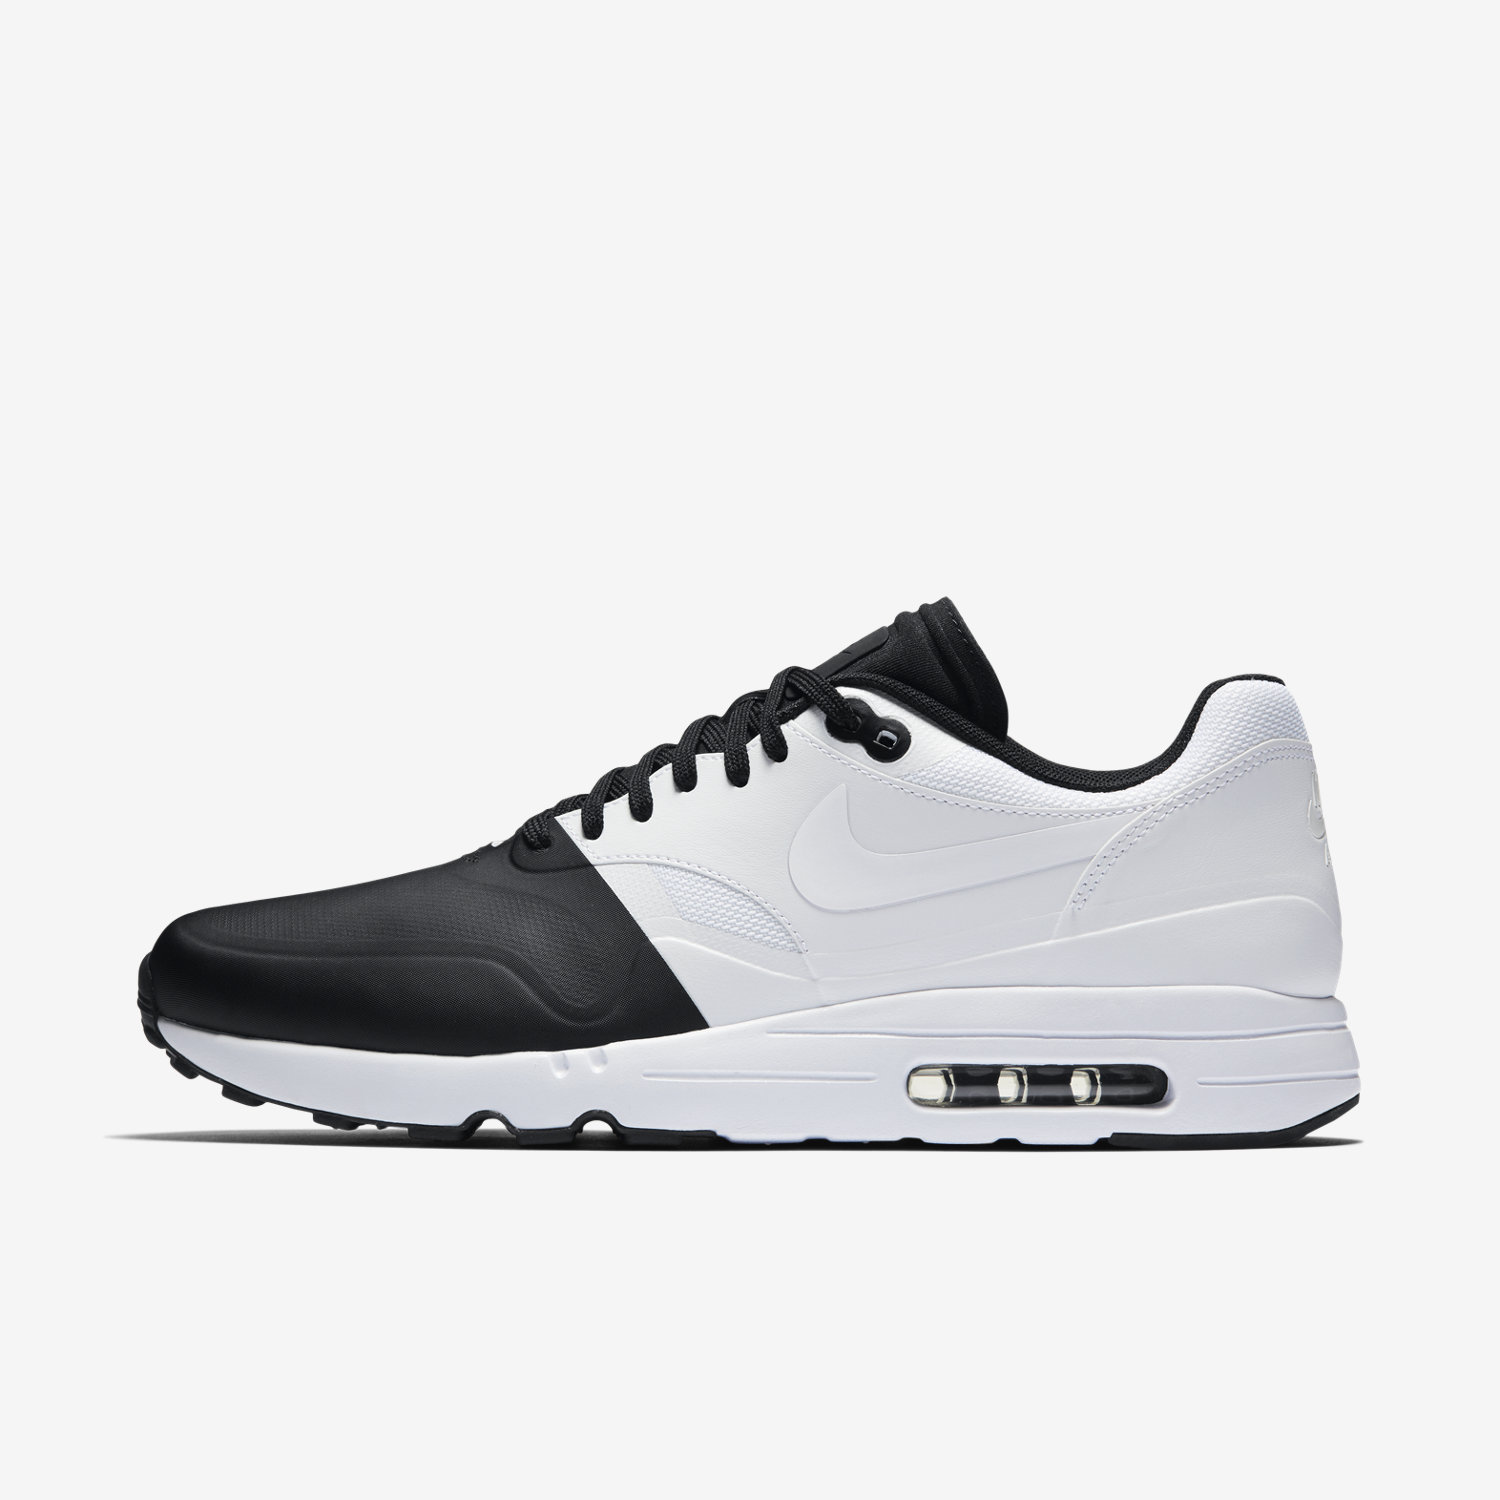 Cheap Nike Air Max 87 Black And White Alliance for Networking Visual Culture